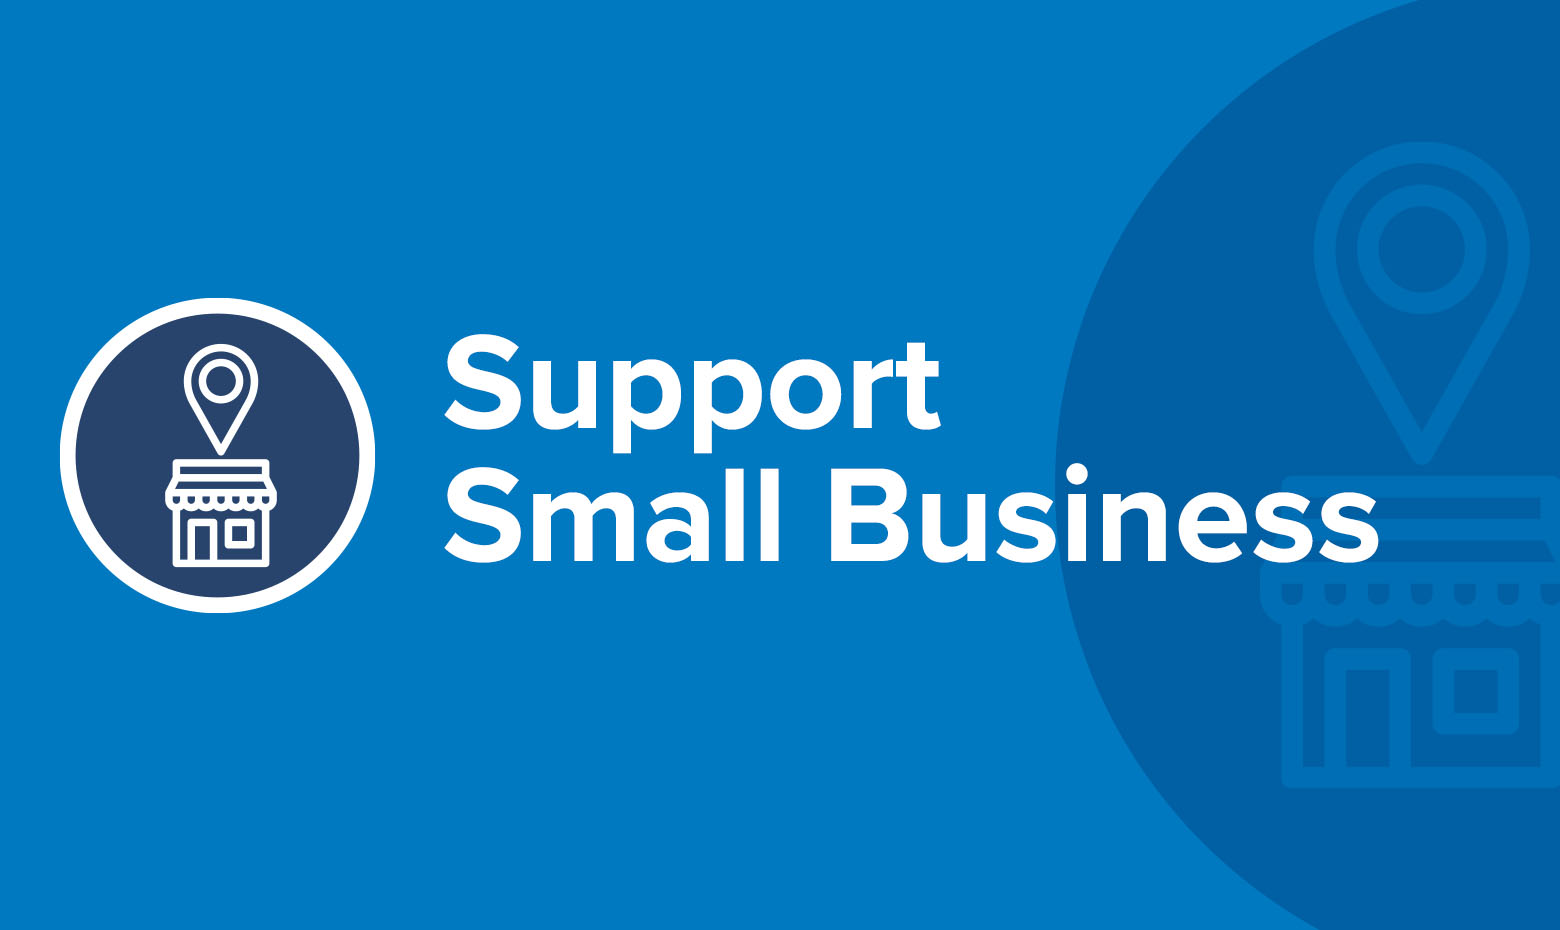 Support Small Business in Your Area